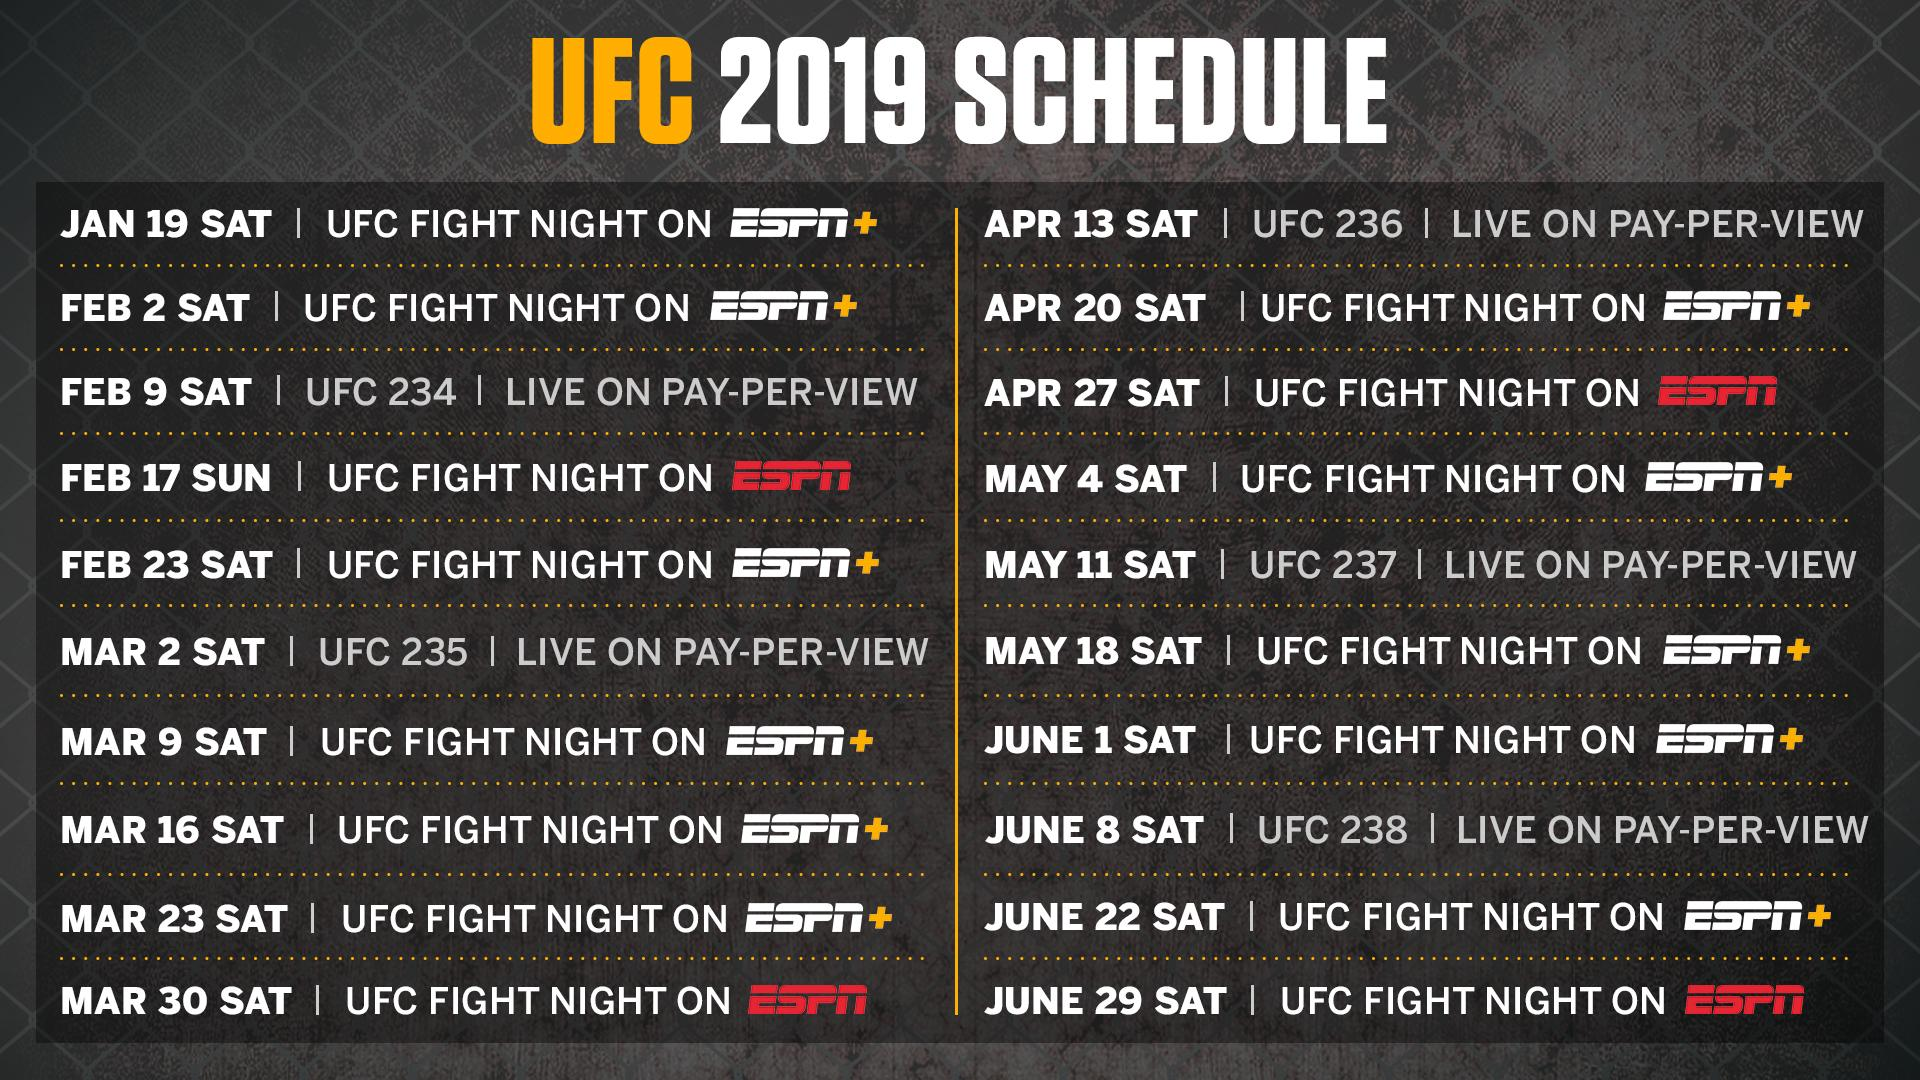 UFC Live Stream: How to Watch UFC Online Without Cable